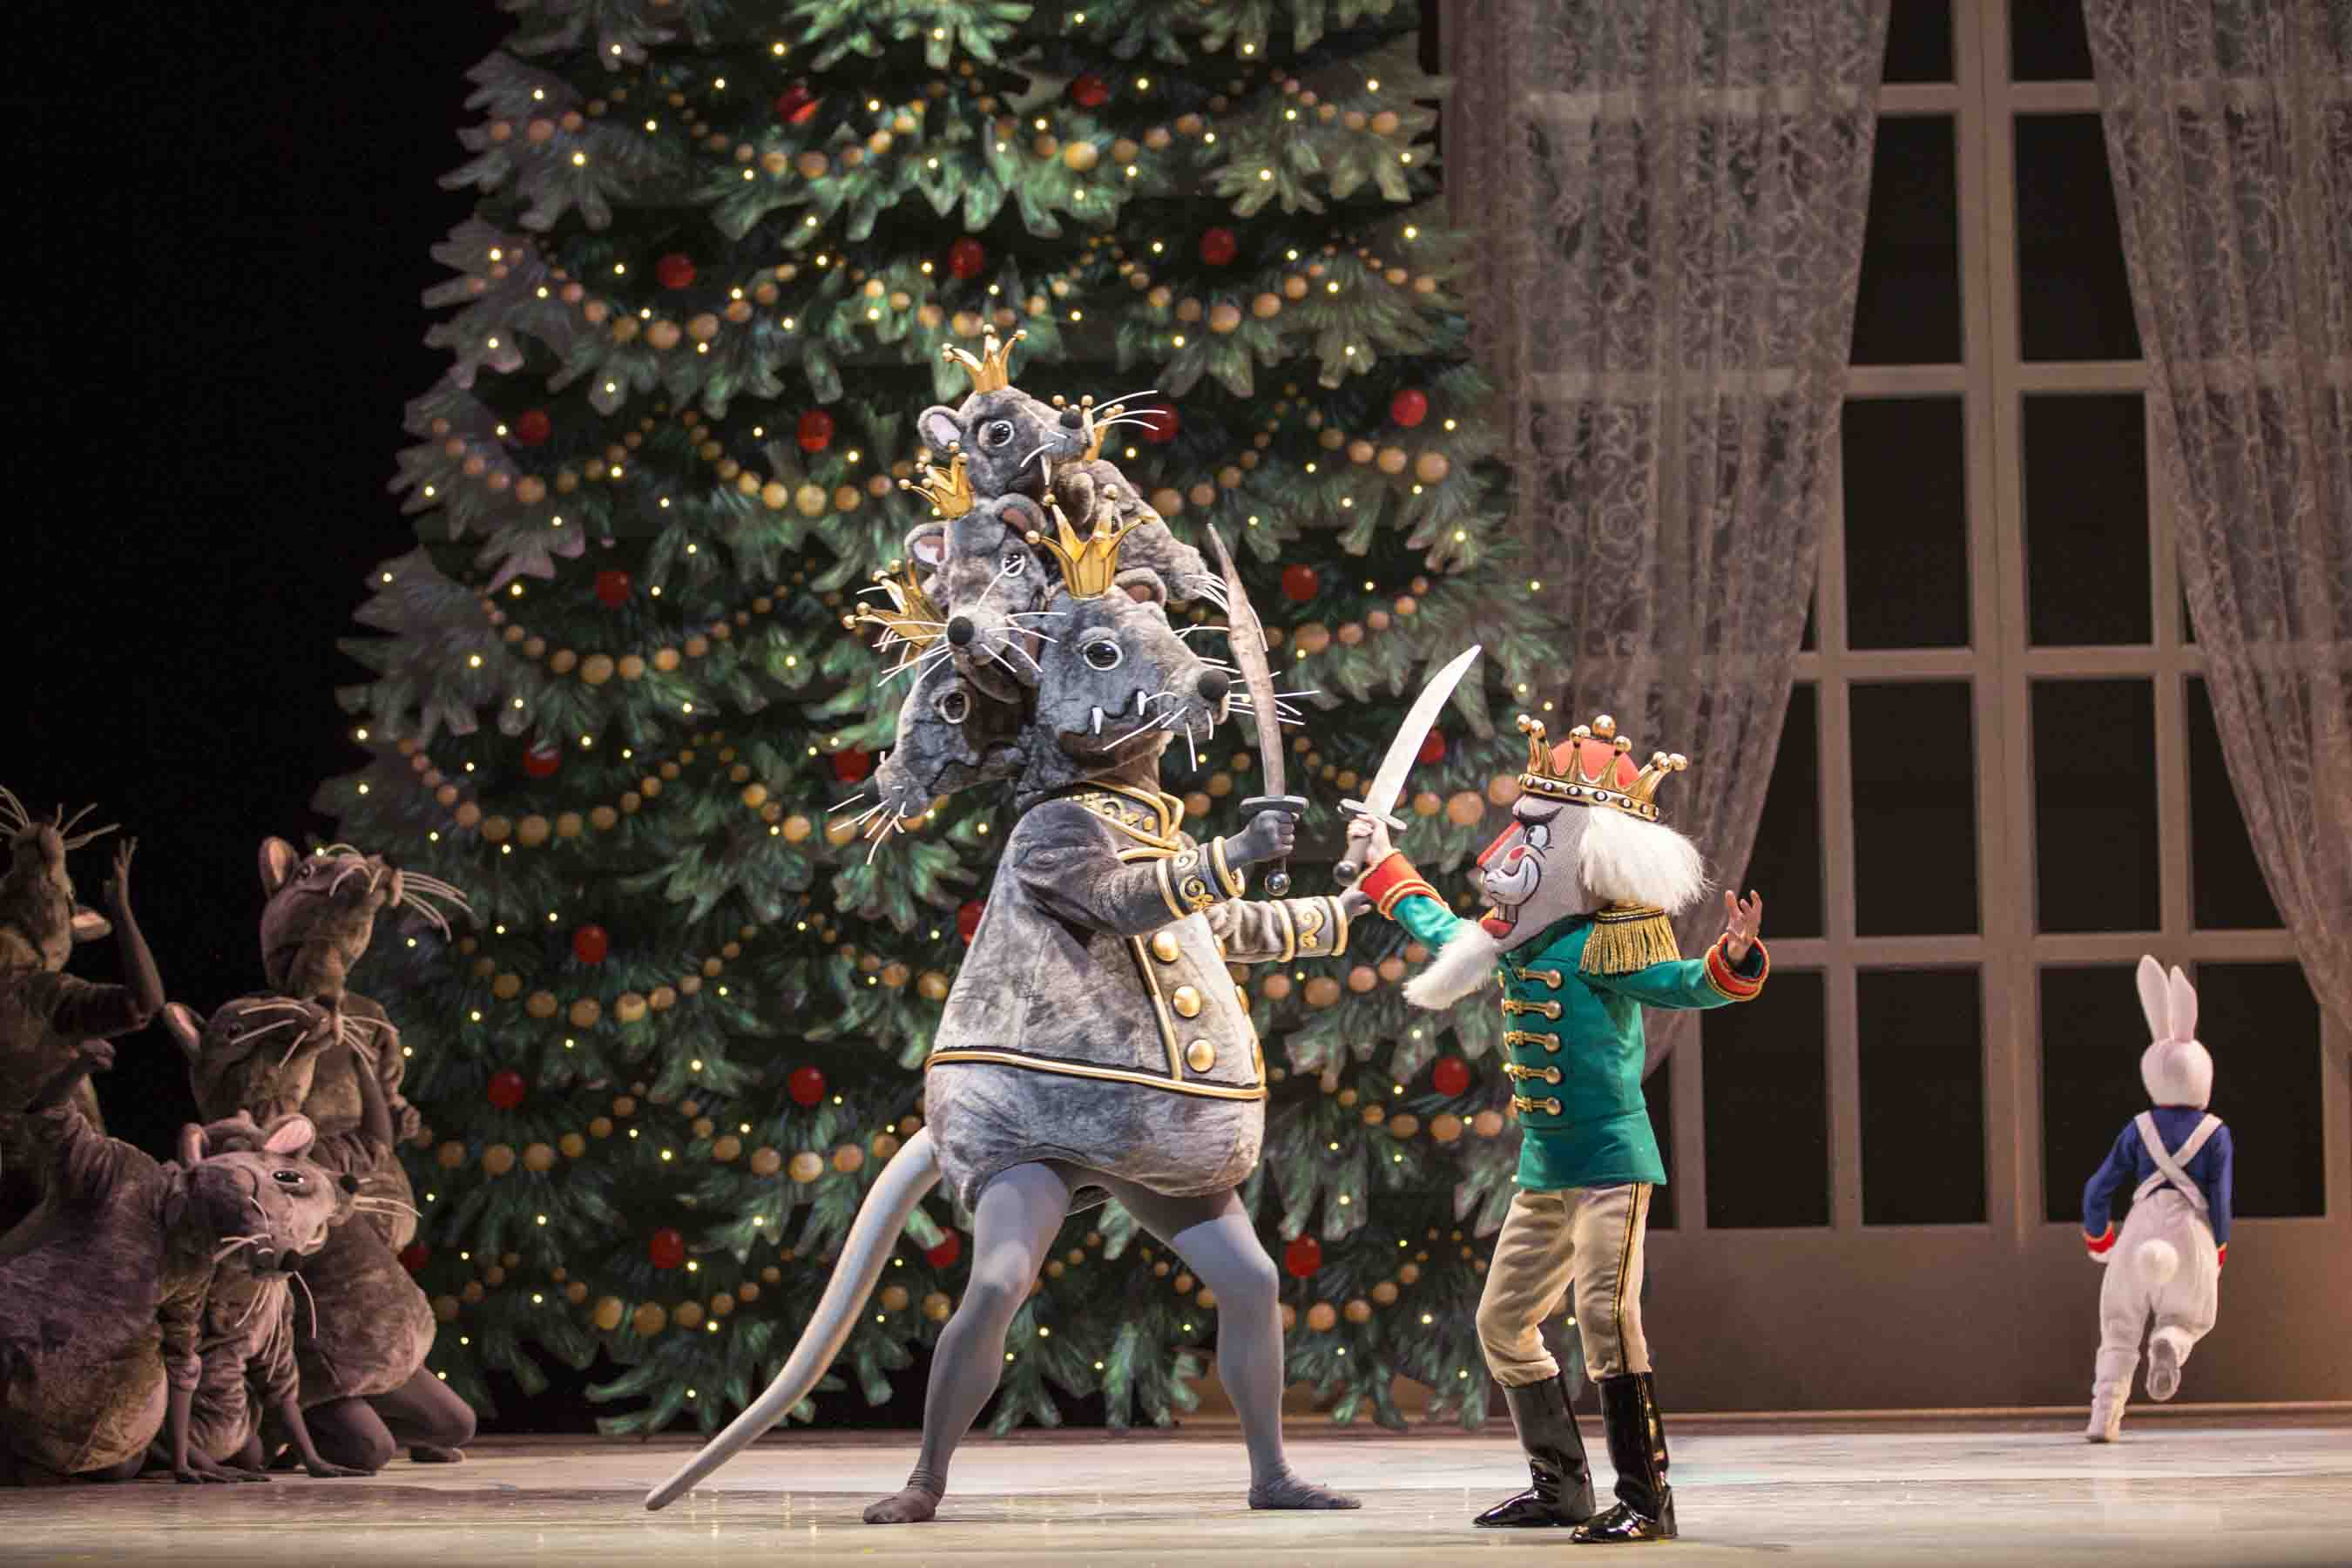 Joshua Grant and Joh Morrill in George Balanchine's The Nutcracker™, © The George Balanchine Trust. Photo © Angela Sterling